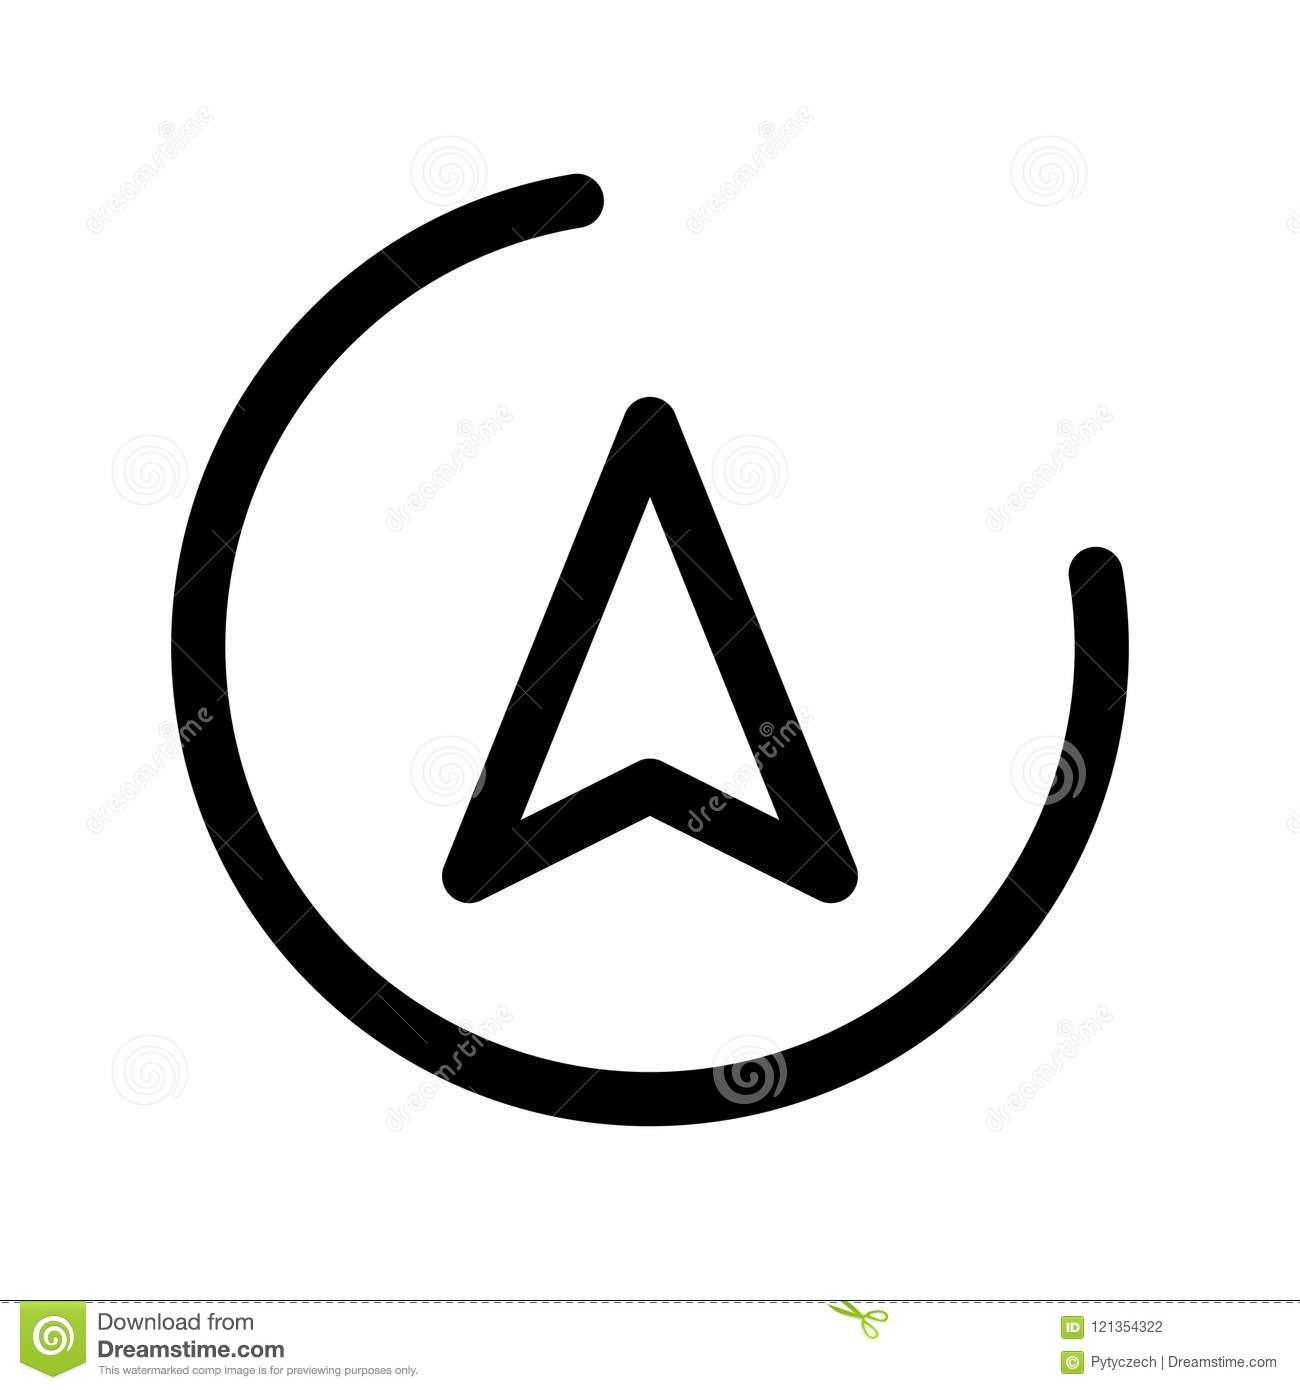 Direction arrow in a circle. Navigation theme. Outline modern design element. Simple black flat vector sign with rounded